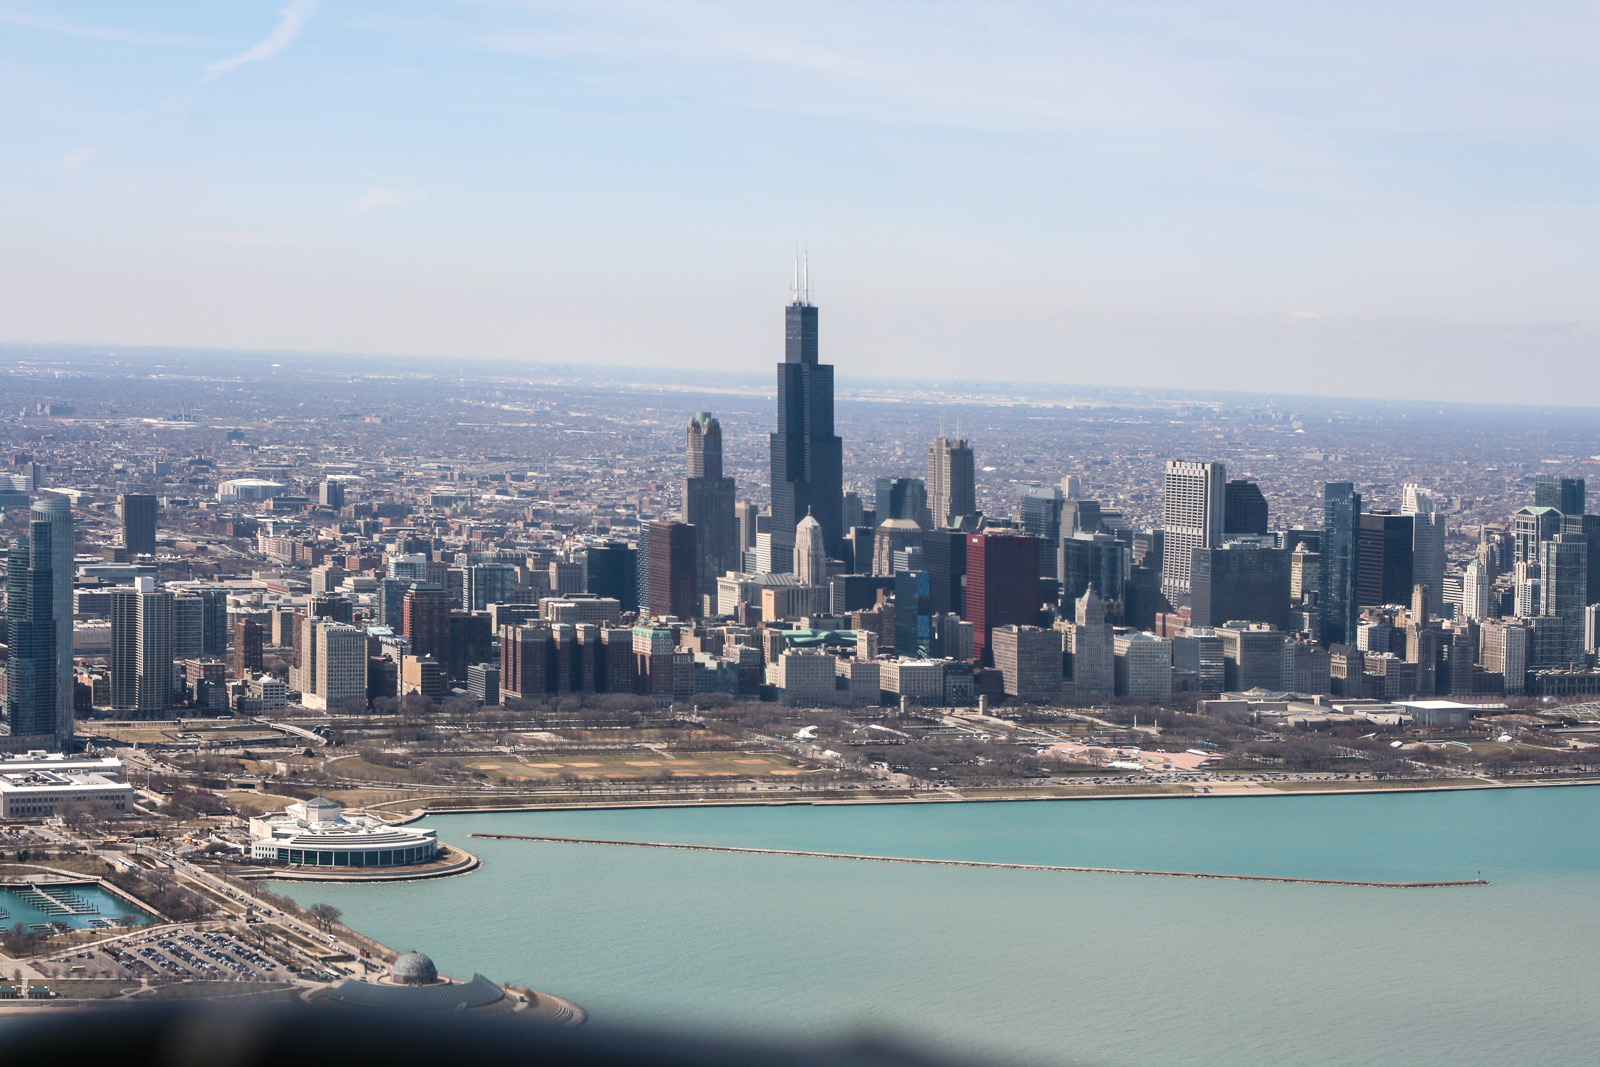 A mile of runway will take you anywhere.: Chicago, race ... | 1600 x 1067 jpeg 467kB